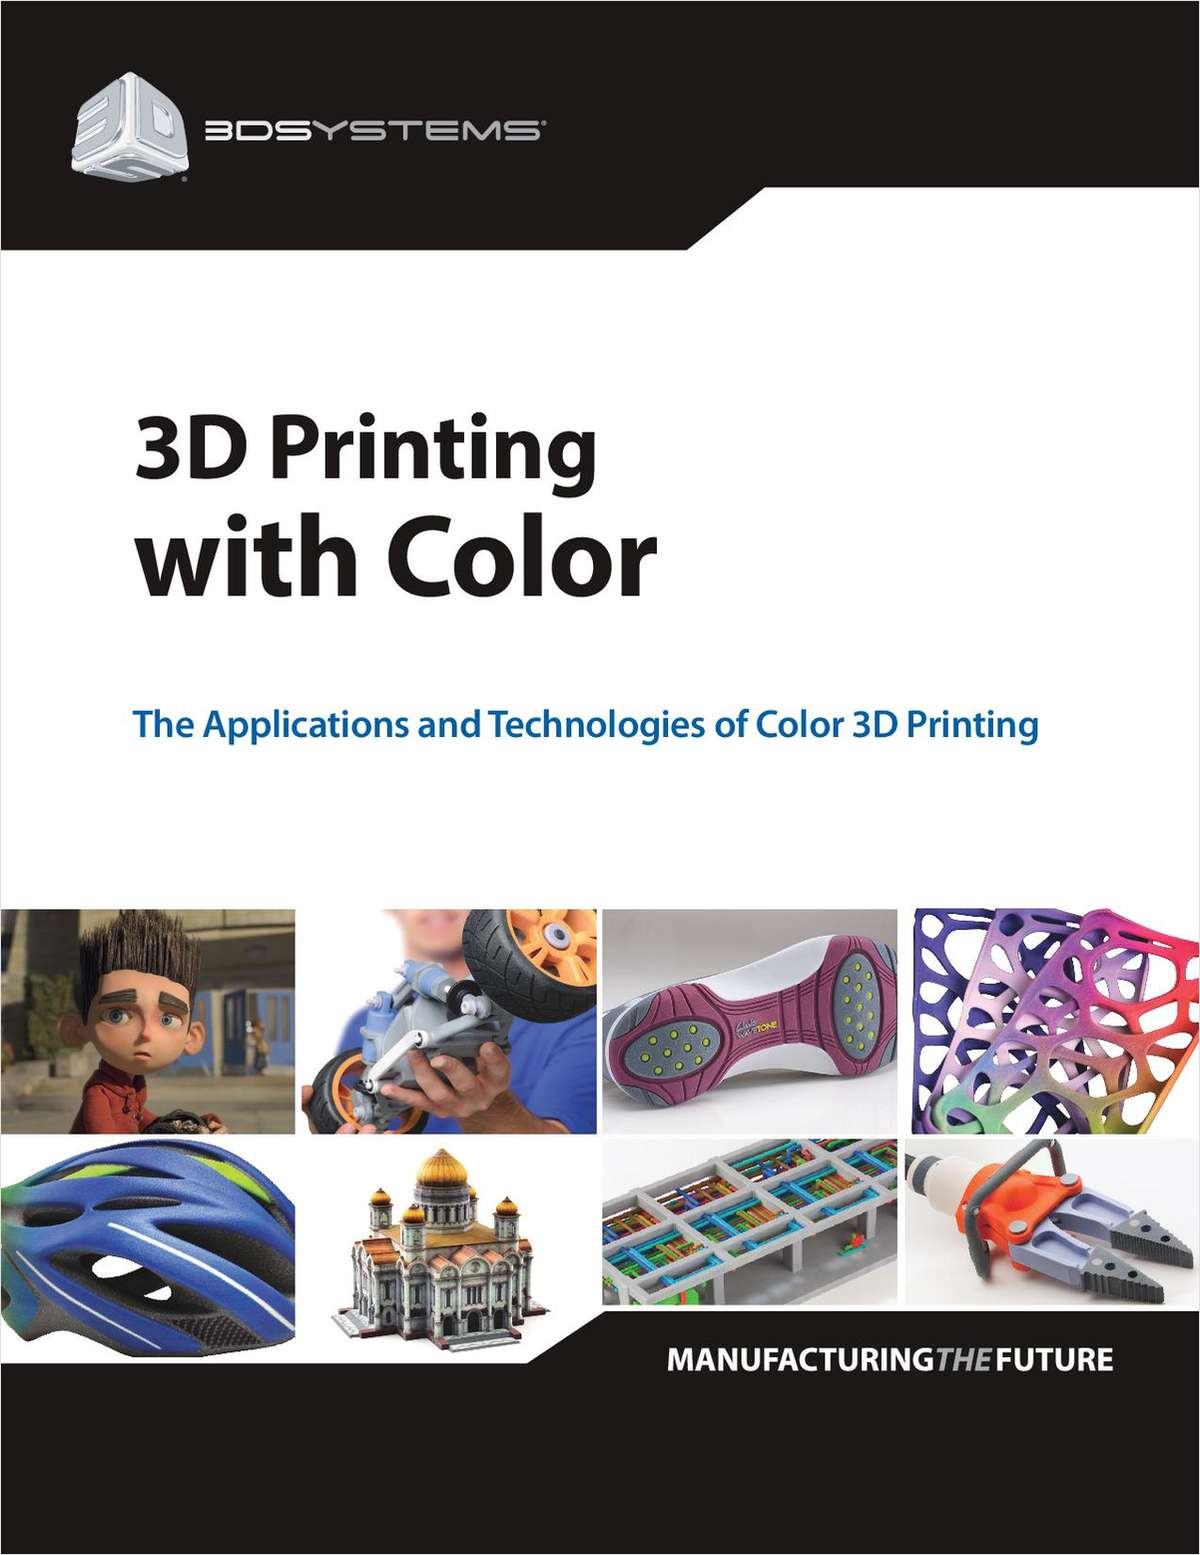 Find The 3D Printer That Fits Your Color Printing Needs